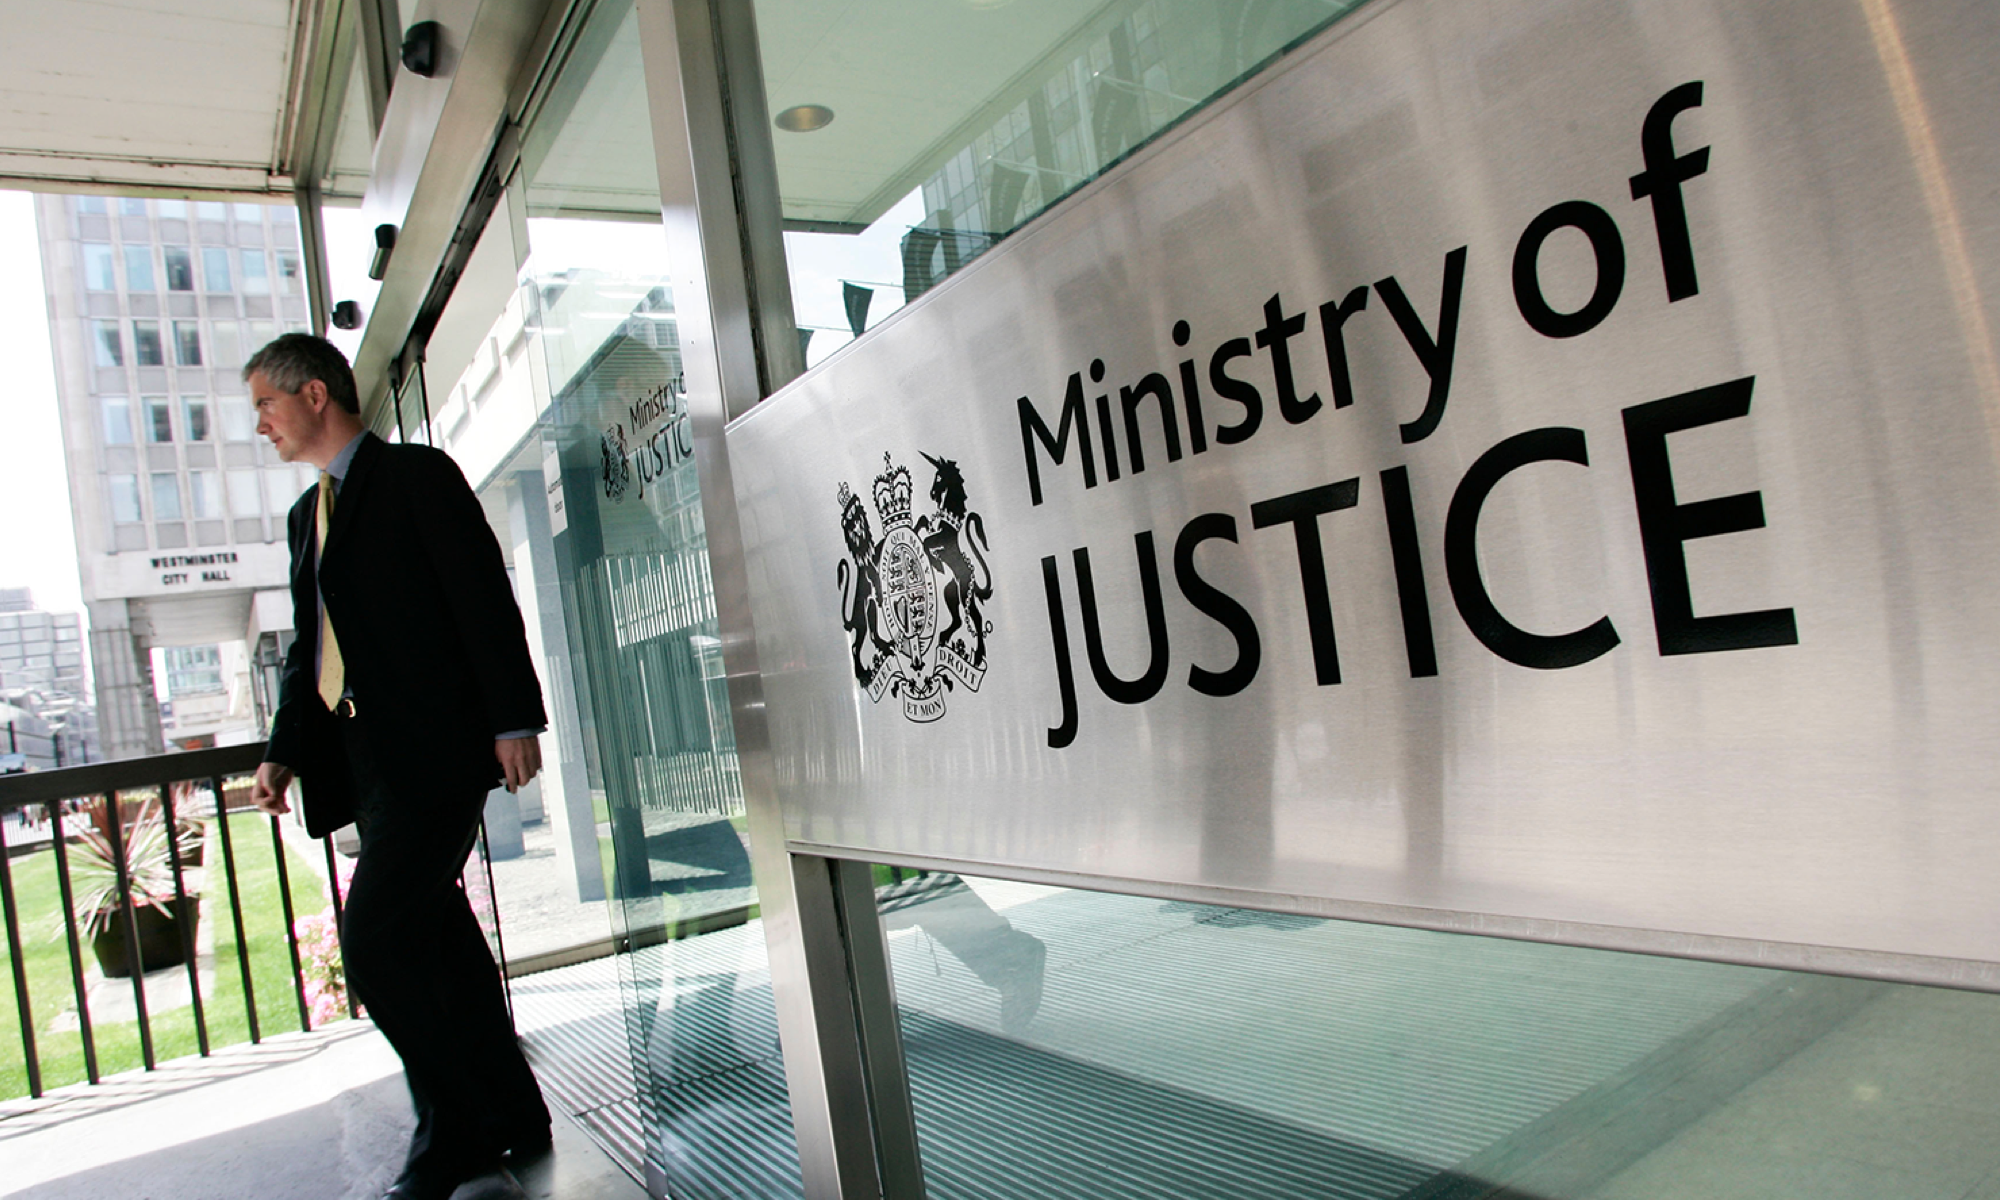 Person leaving Ministry of Justice building